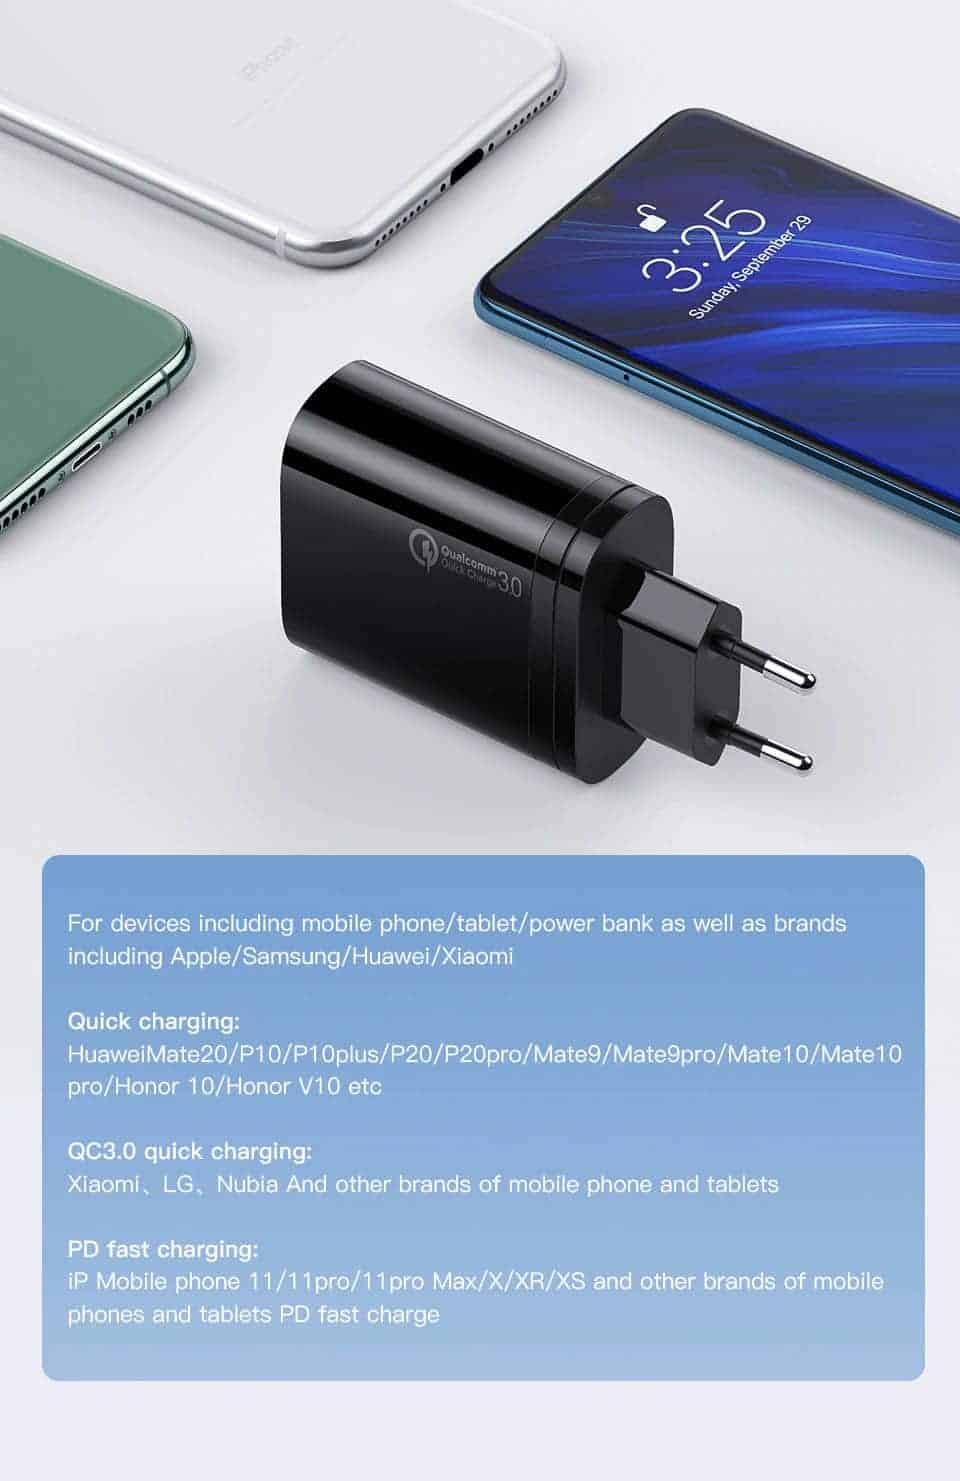 Kuulaa Quick Charger Type C and USB 36W support smartphone